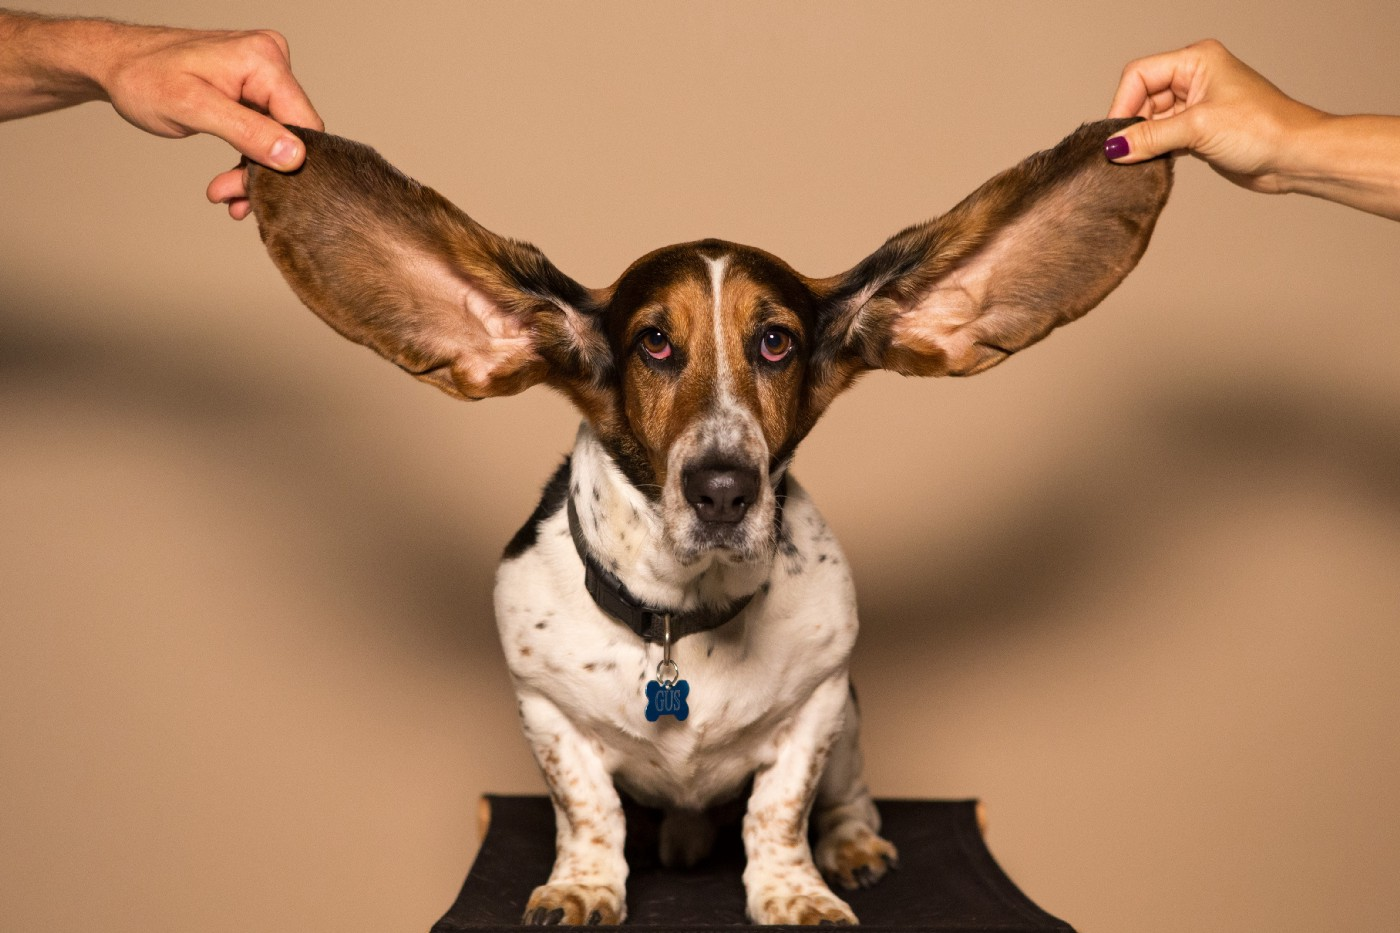 Basset hound with very long ears held up by two human hands